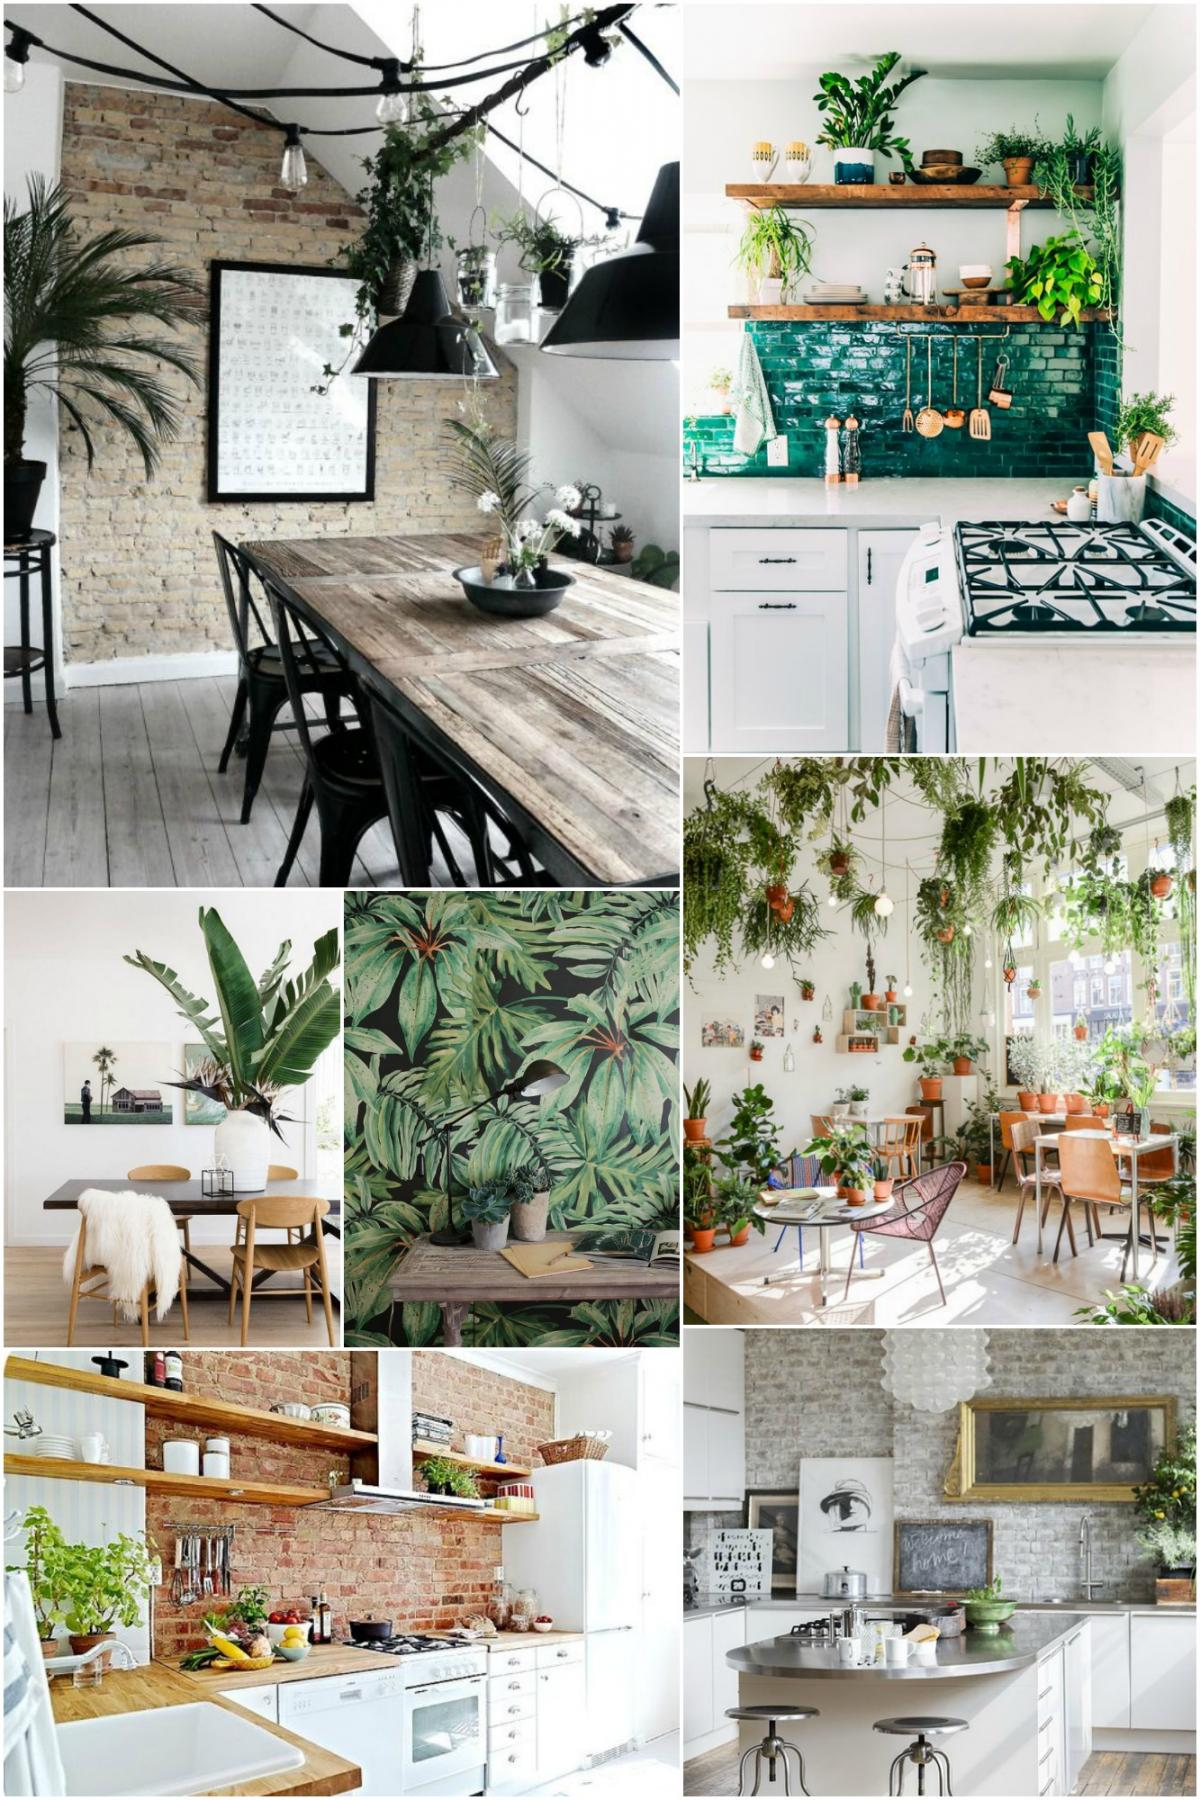 Home Trend- LA Cool Kitchen Mood Board